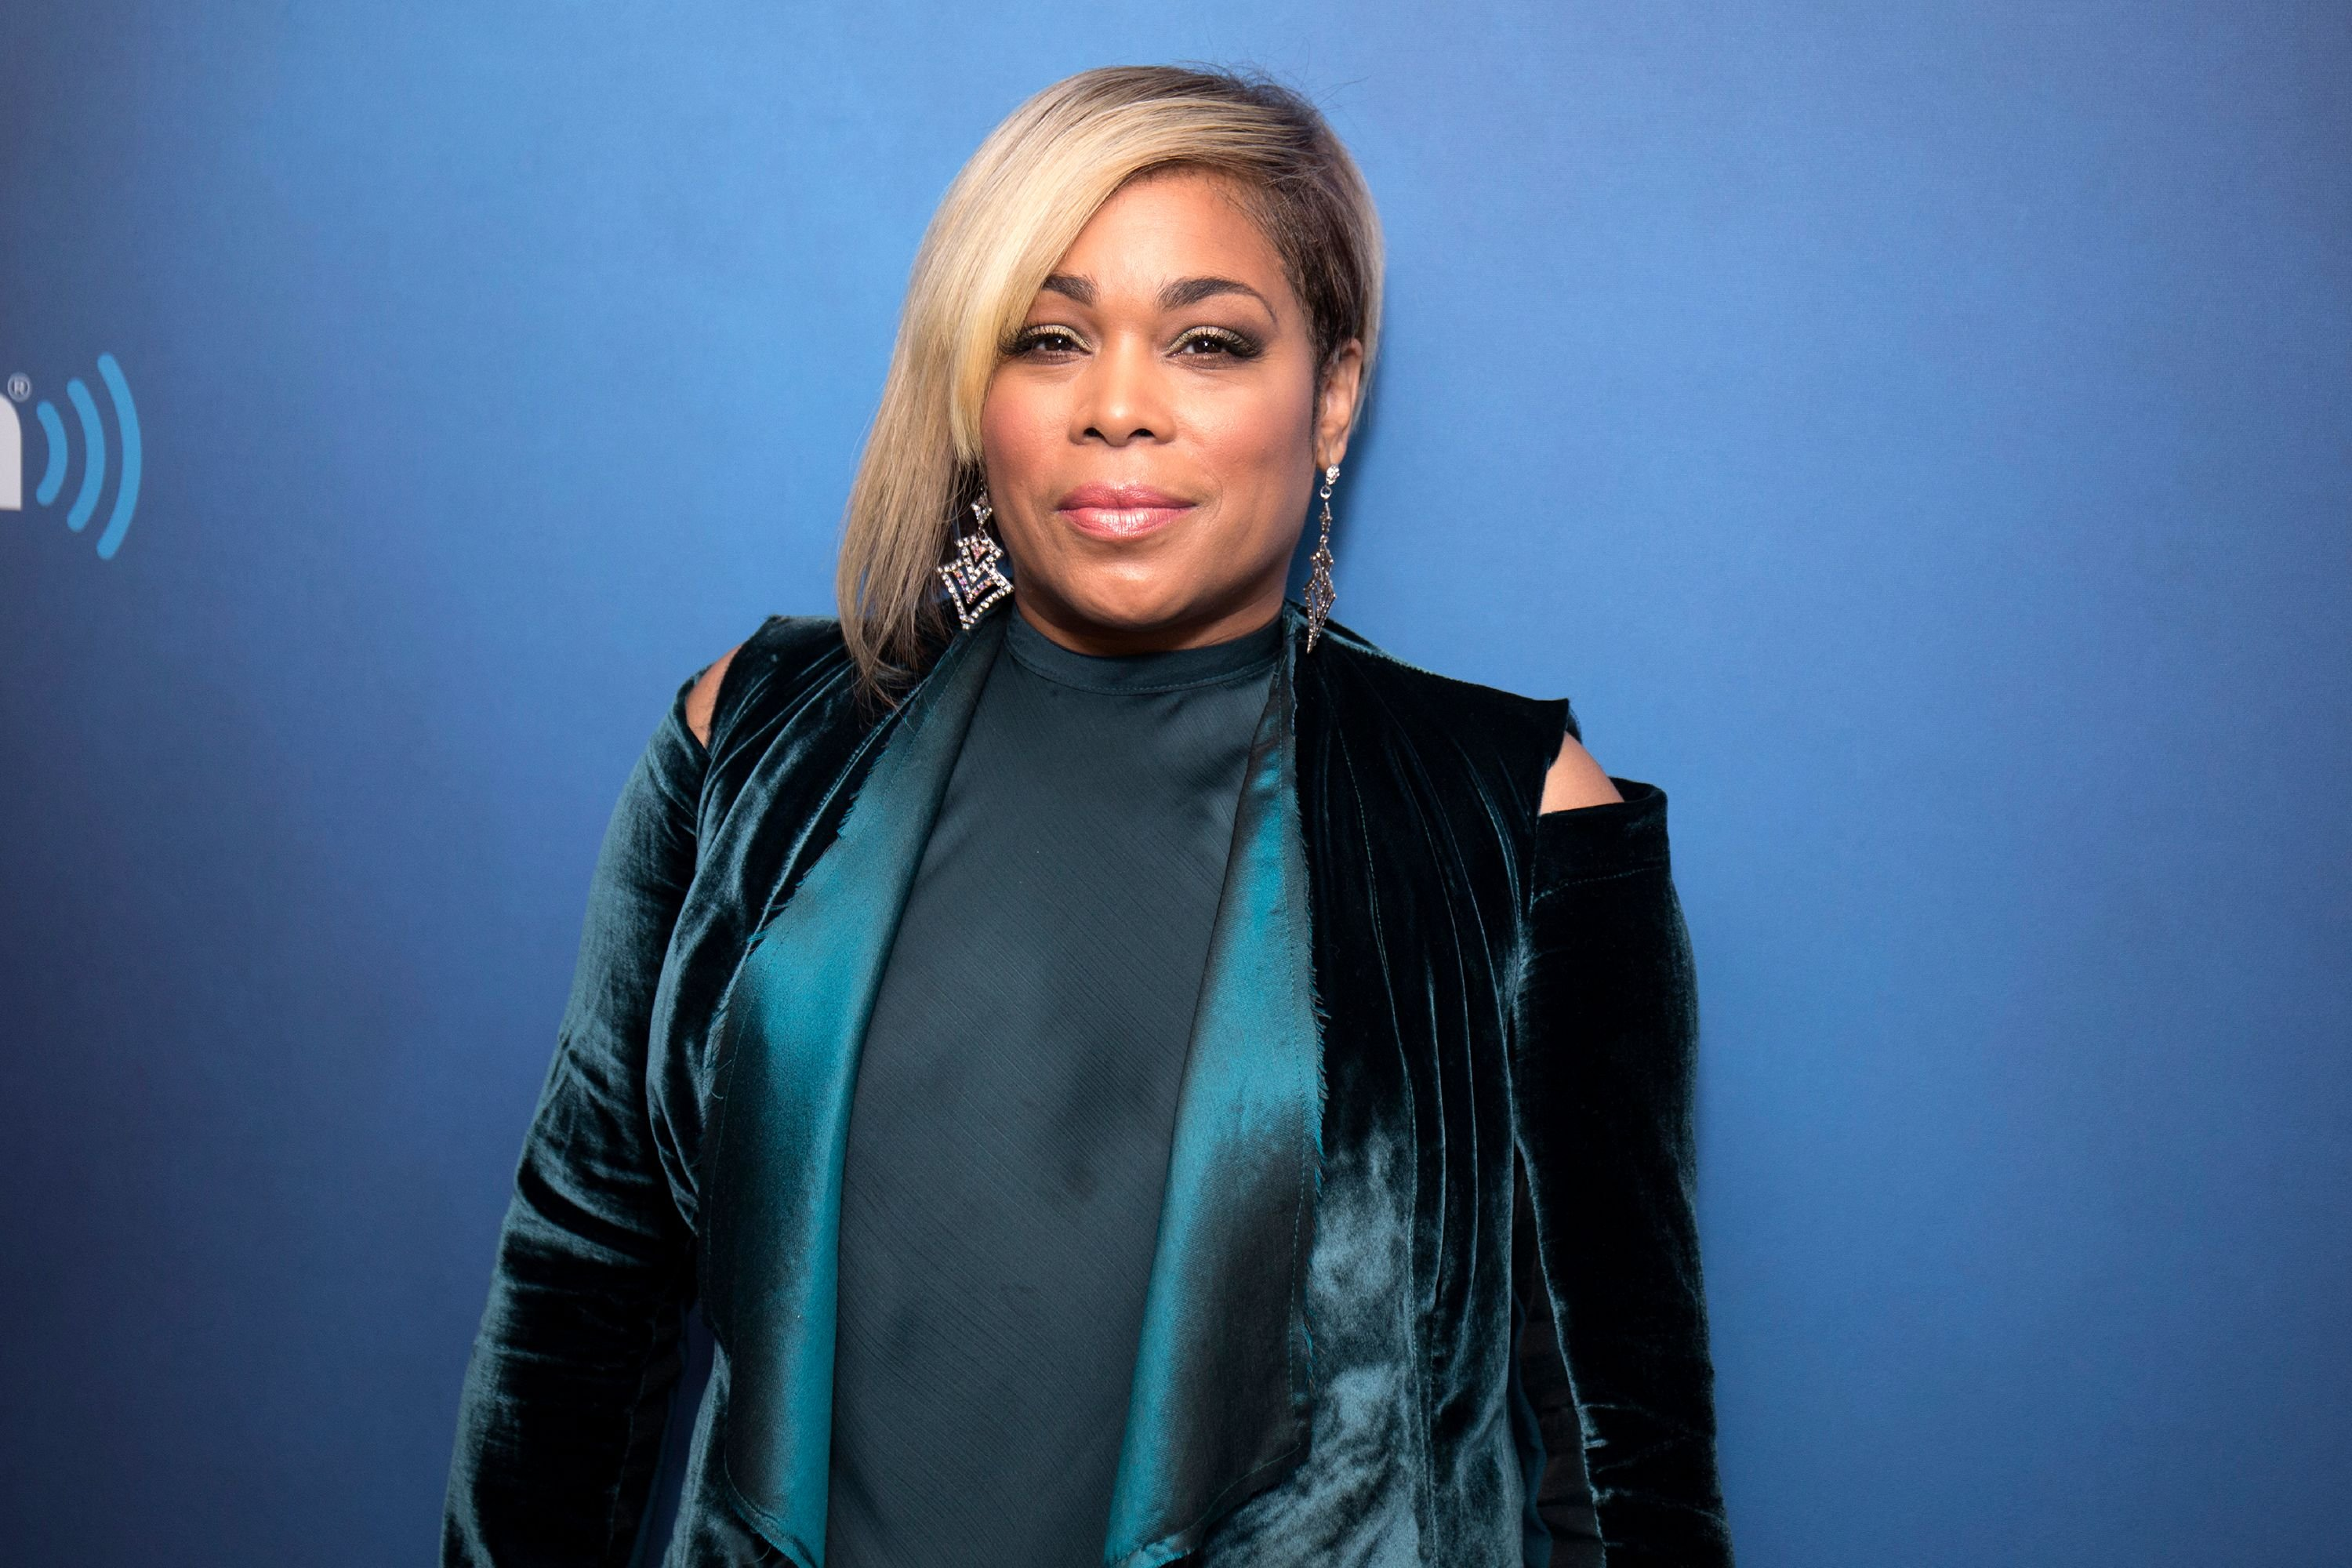 Tionne 'T-Boz' Watkins at SiriusXM Studios on September 12, 2017 in New York City | Photo: Getty Images